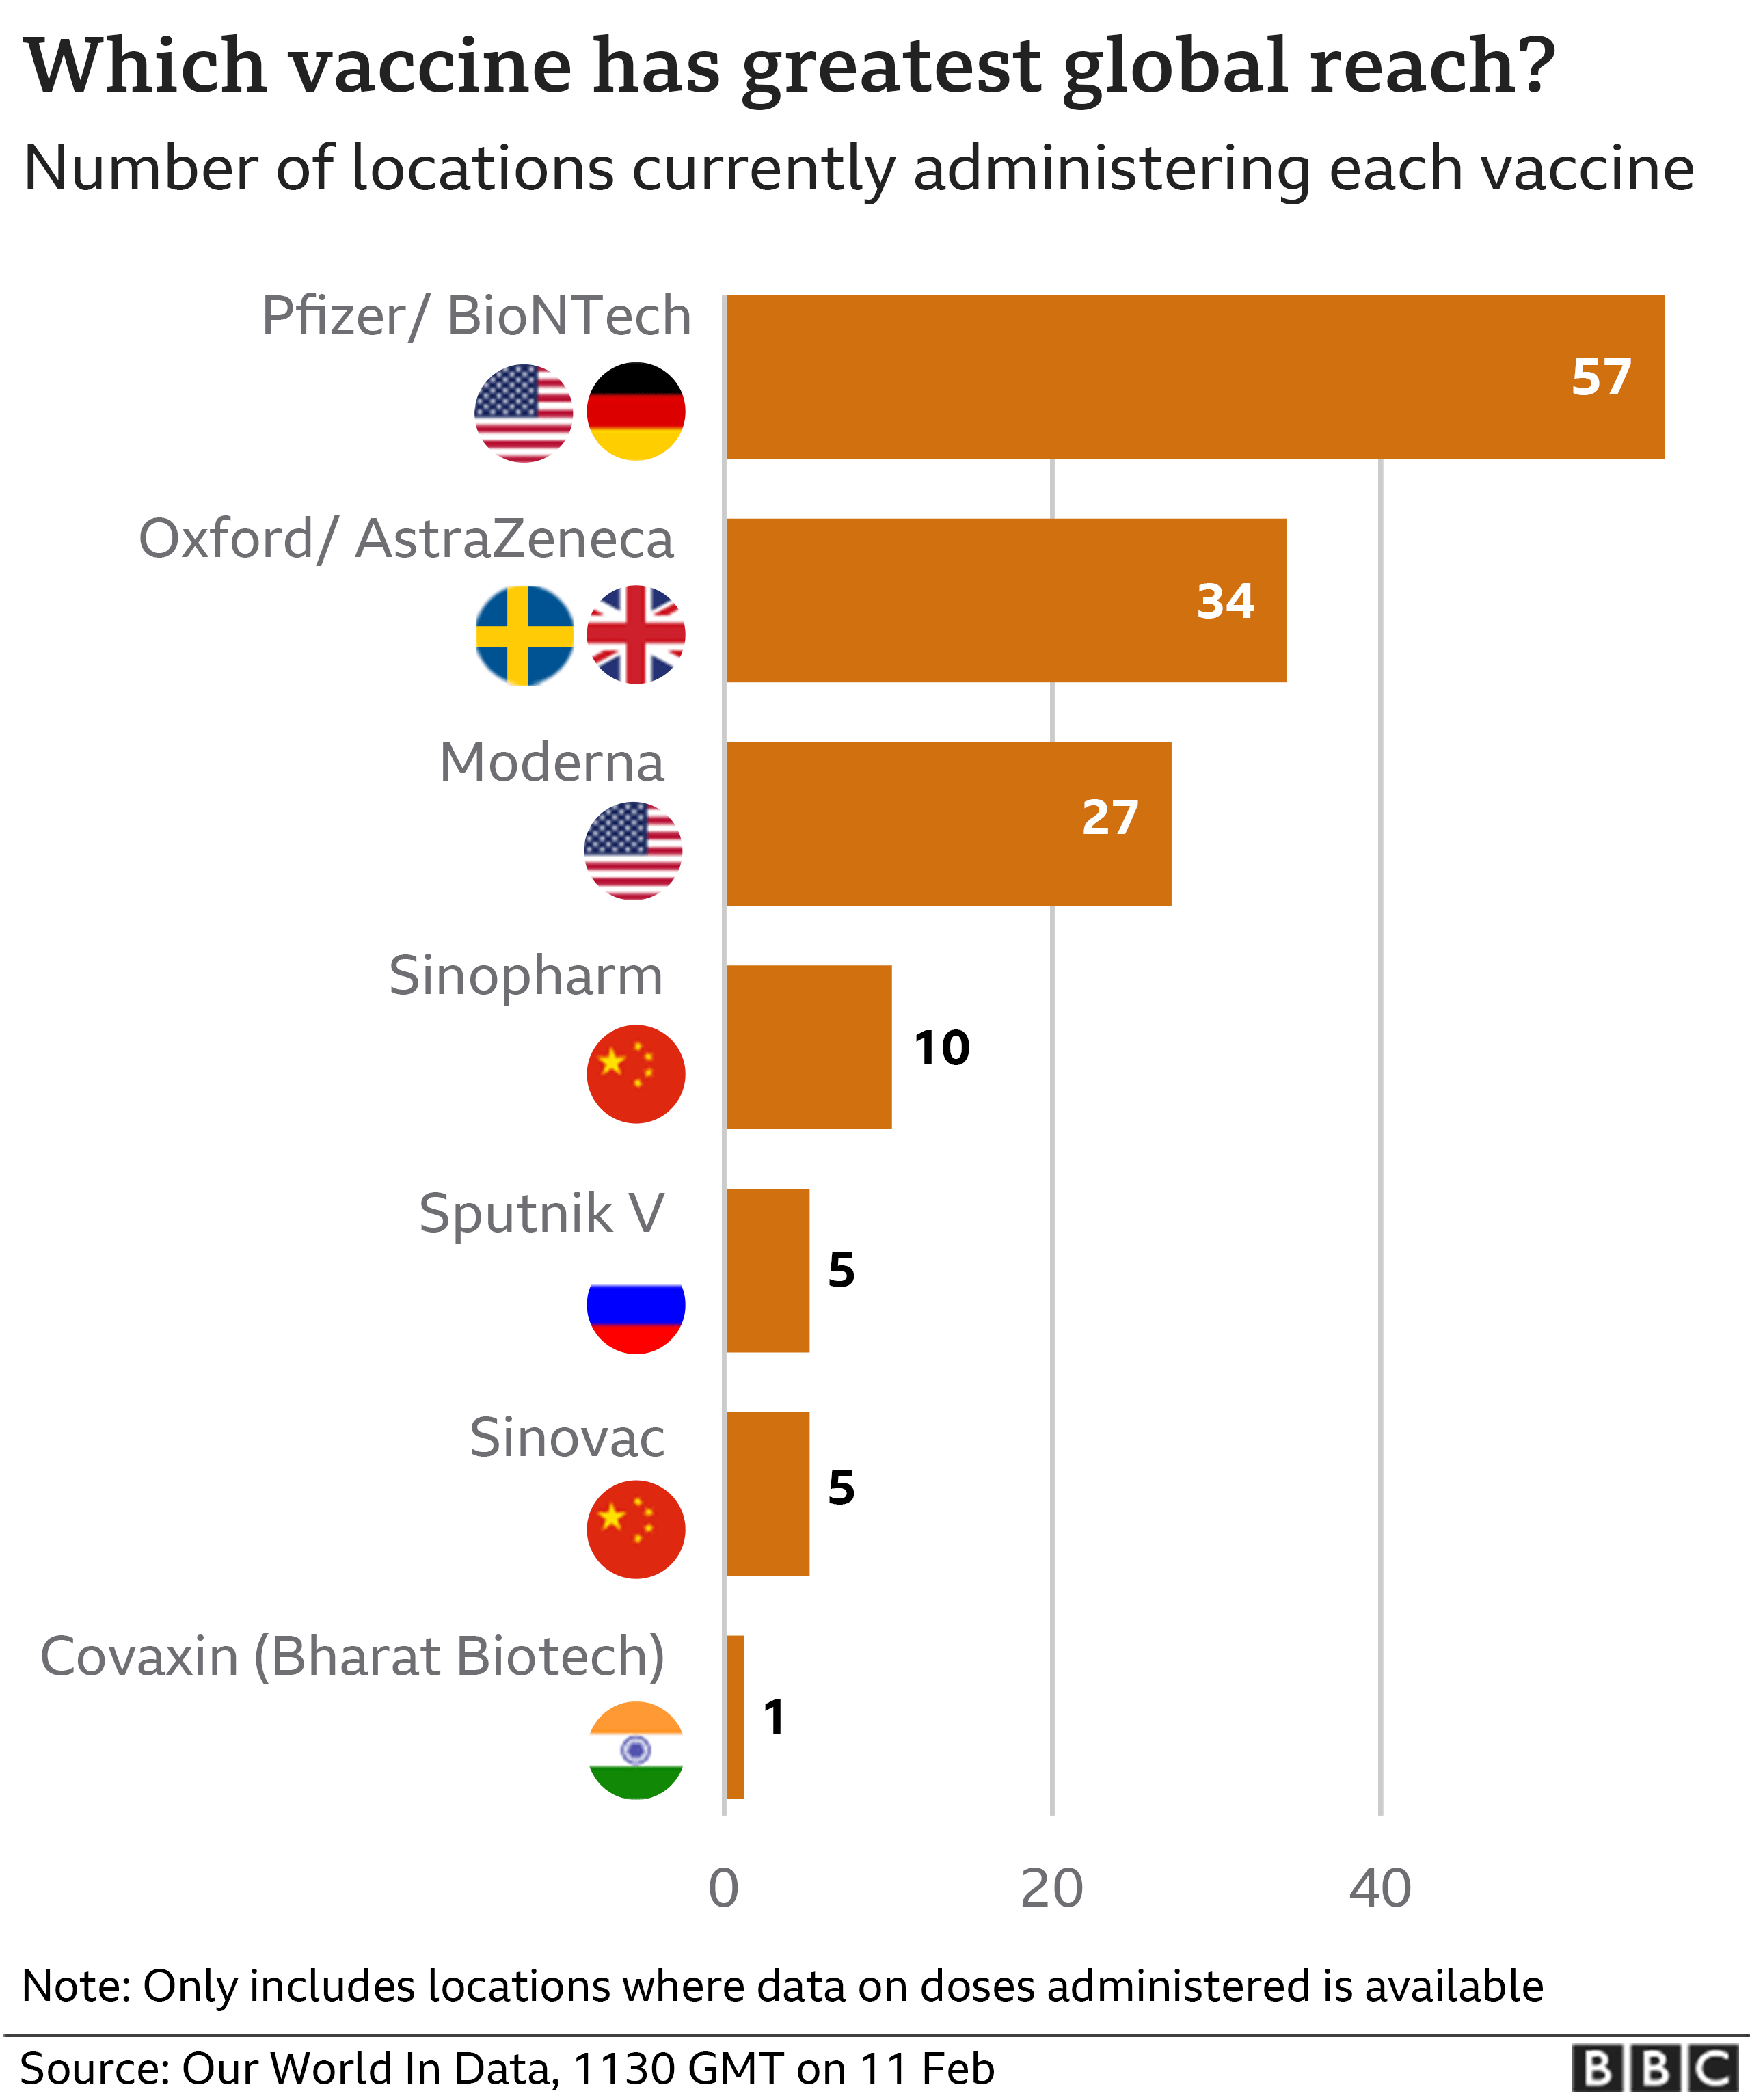 Which vaccines have greatest global reach? Pfizer/Biontech 57 countries; Oxford 34 countries; Moderna 27 countries; SinoPharm 10 countries; Sputnik V 5 countries; SinoVac 5 countries; Covavaxin 1 country